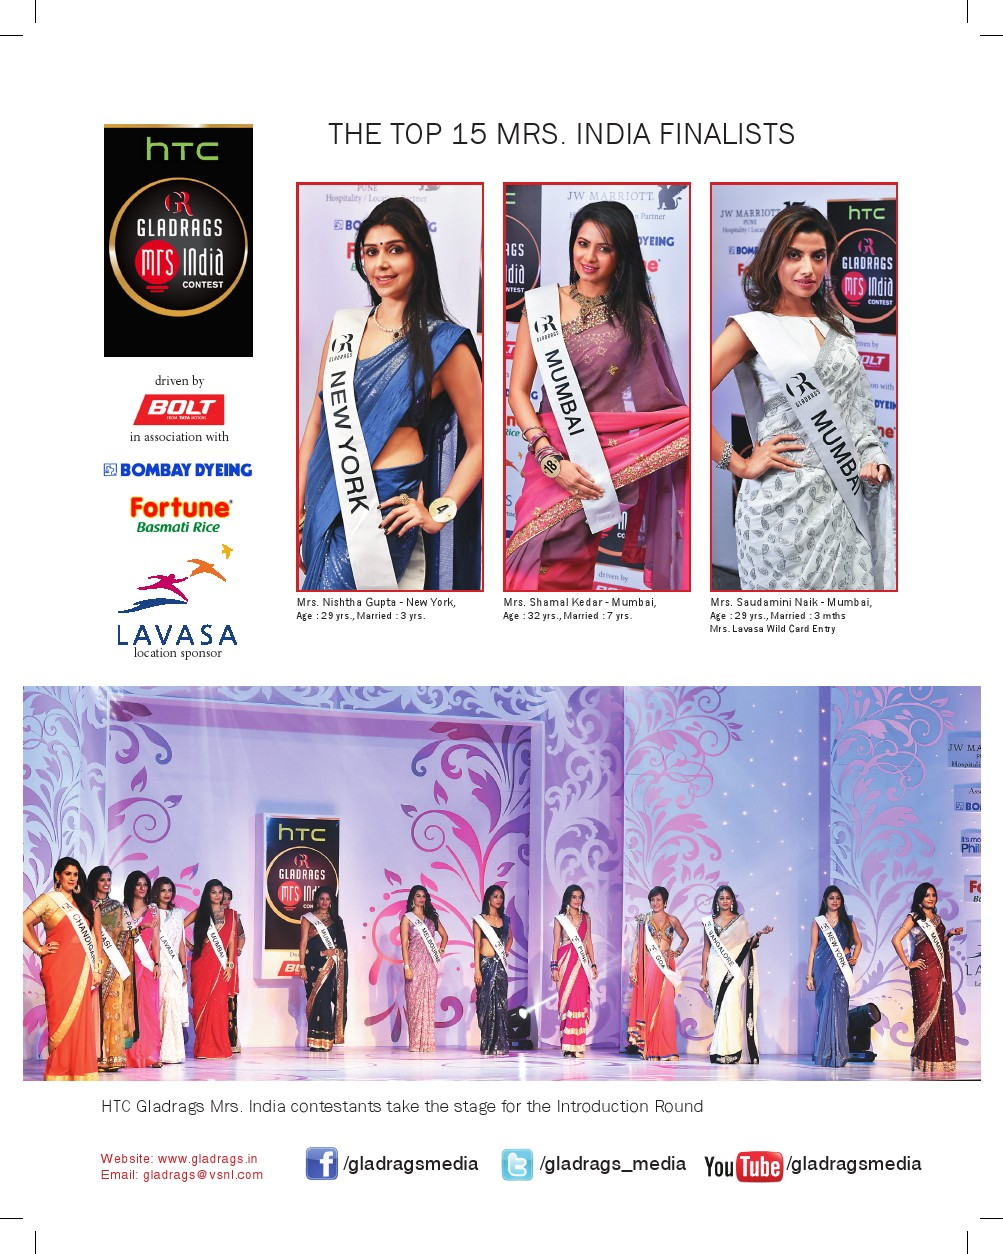 htc Gladrags Mrs.India 2015 Contest Top 15 Finalis